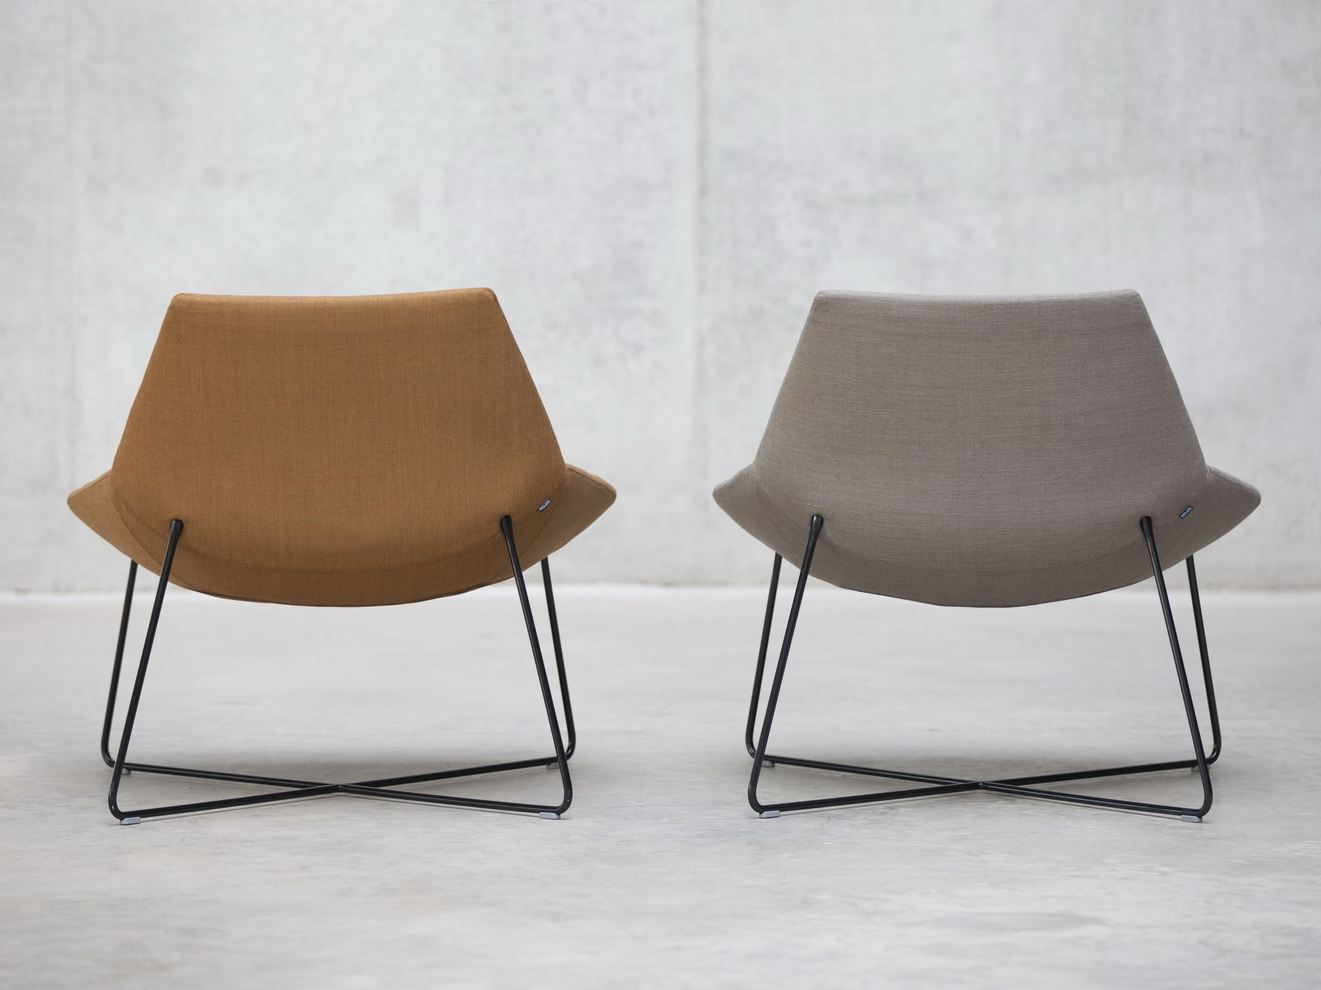 Dunas petit fauteuil by inclass mobles design christophe pillet for Petit fauteuil salon design